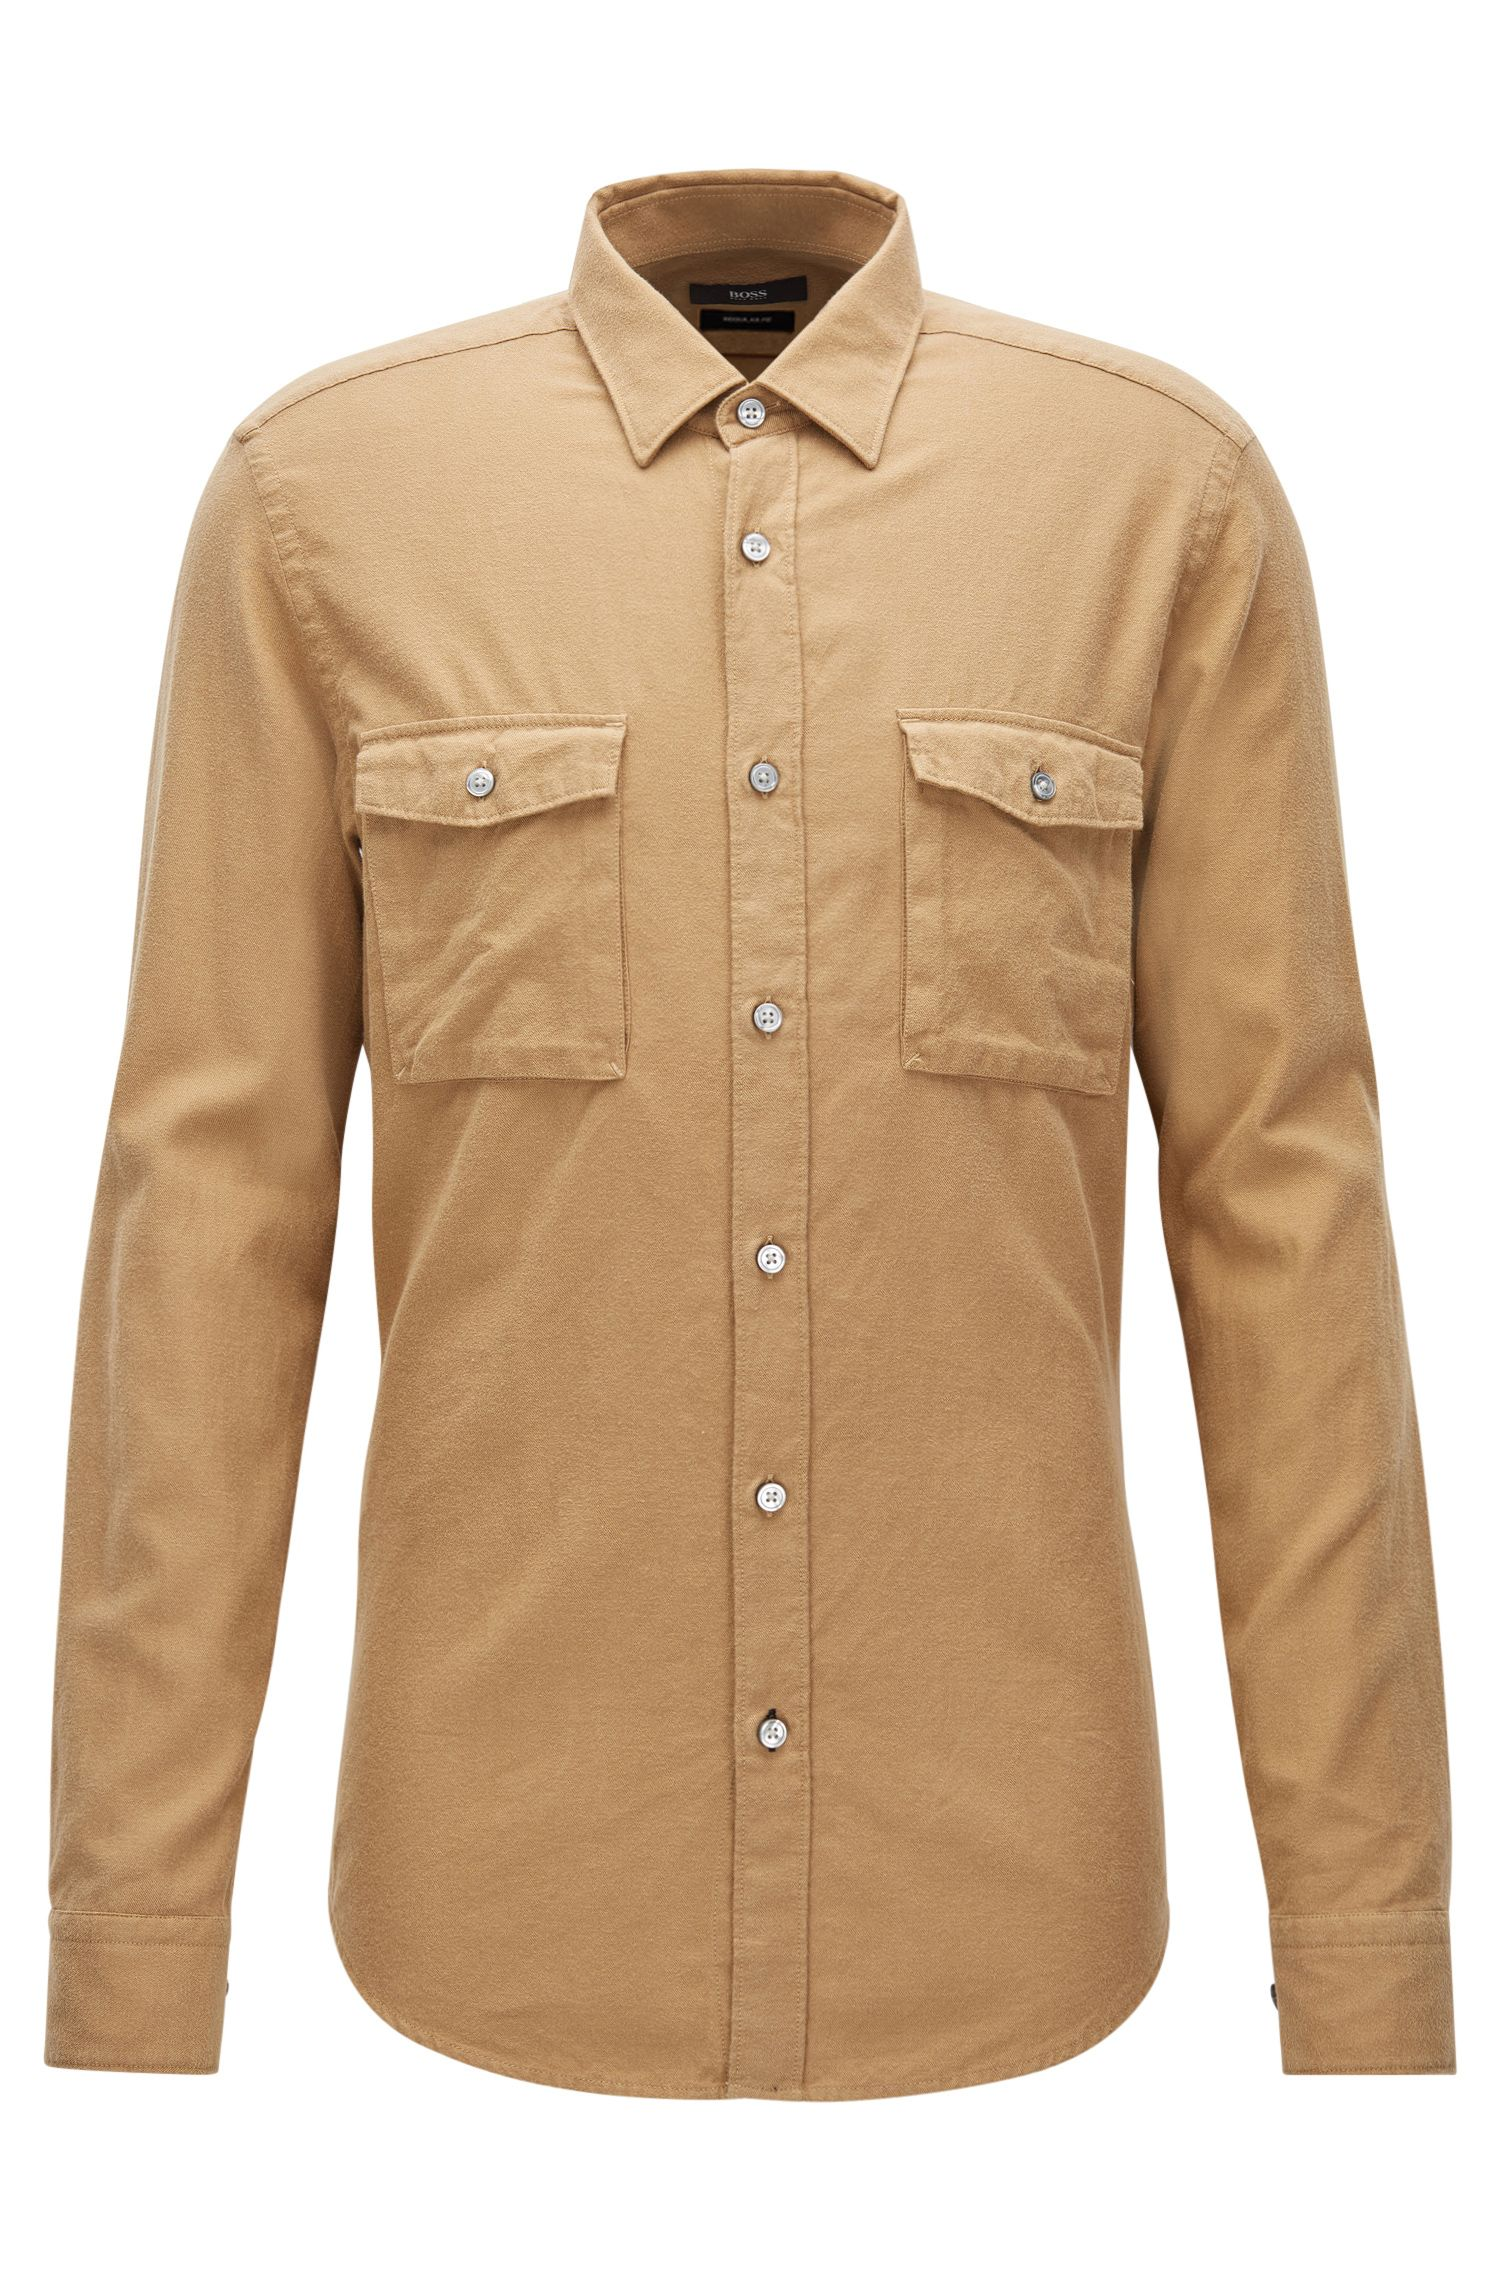 Regular-fit shirt in heavyweight cotton flannel